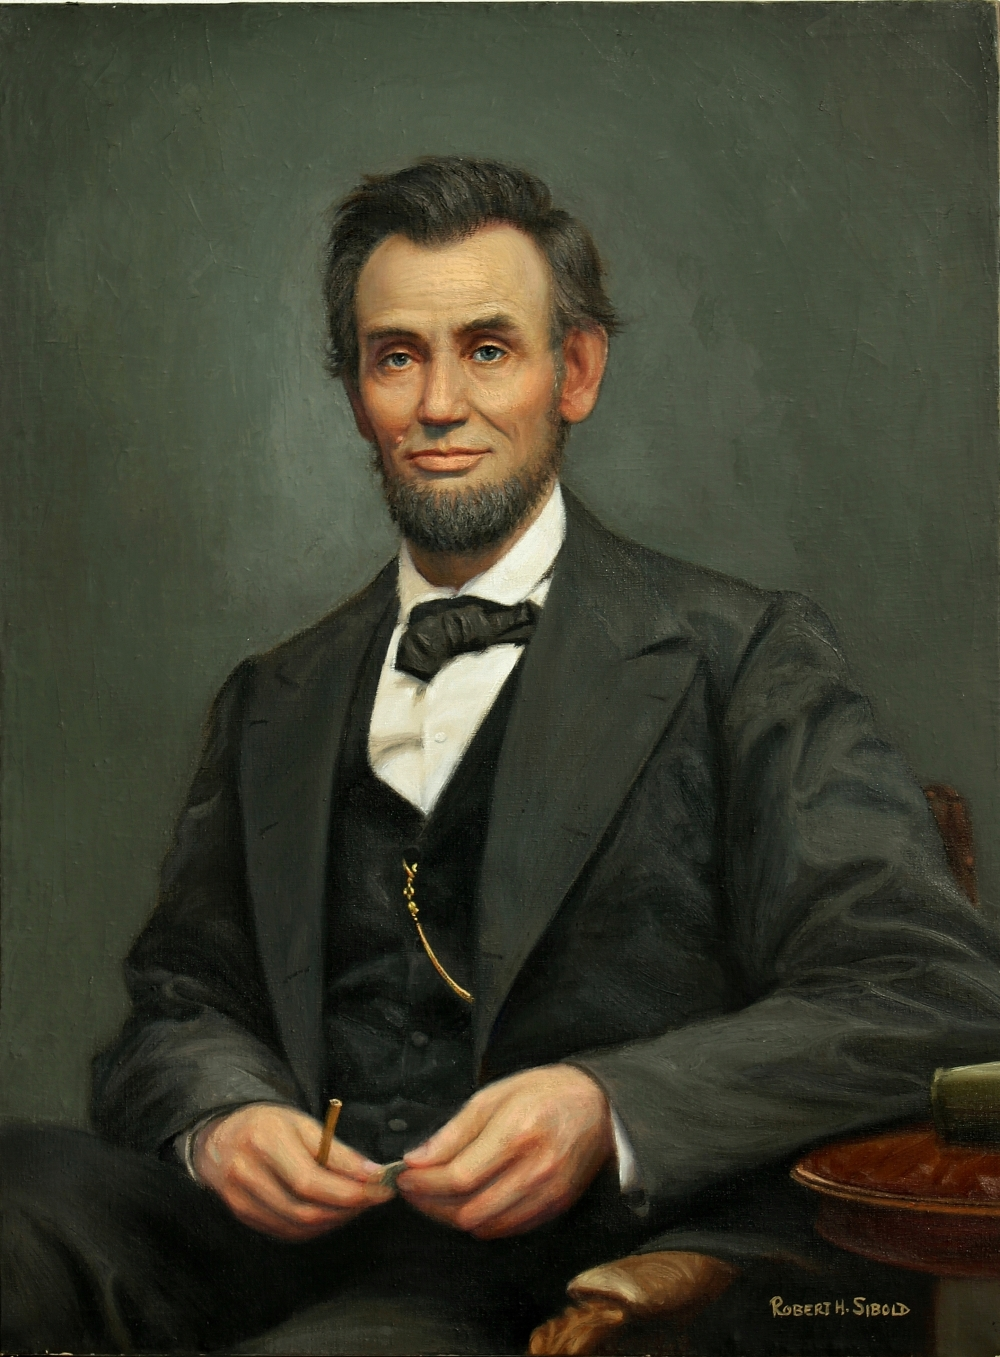 Abraham-Lincoln-painting-abraham-lincoln-35948611-2886-3917